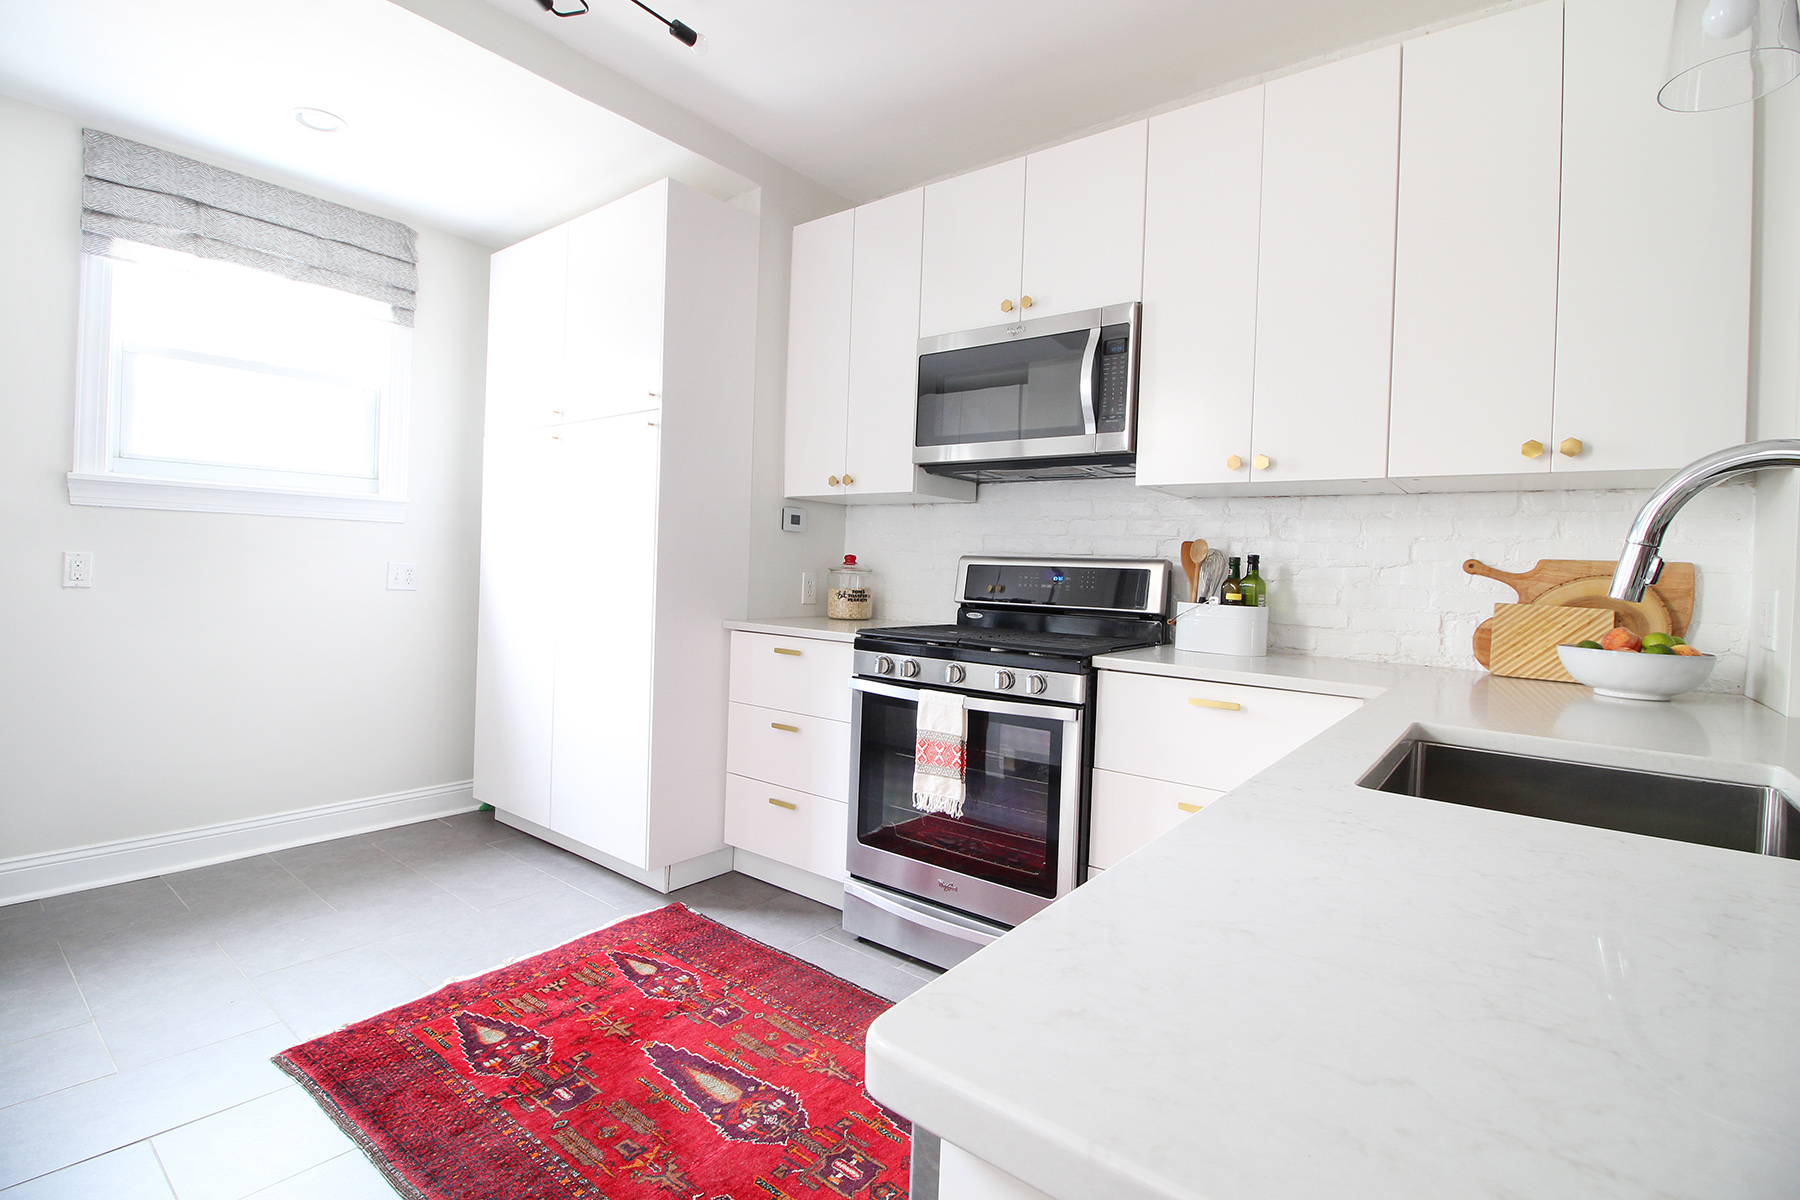 A 1930s row home in Philadelphia gets a big makeover. Come see the before and after of this home's living, dining, and kitchen open floor plan and get ideas for small space city living. Chaney's style is mid-century modern meets traditional that makes for an eclectic, cozy space. The bright and airy modern kitchen opens up to the rest of the first floor.